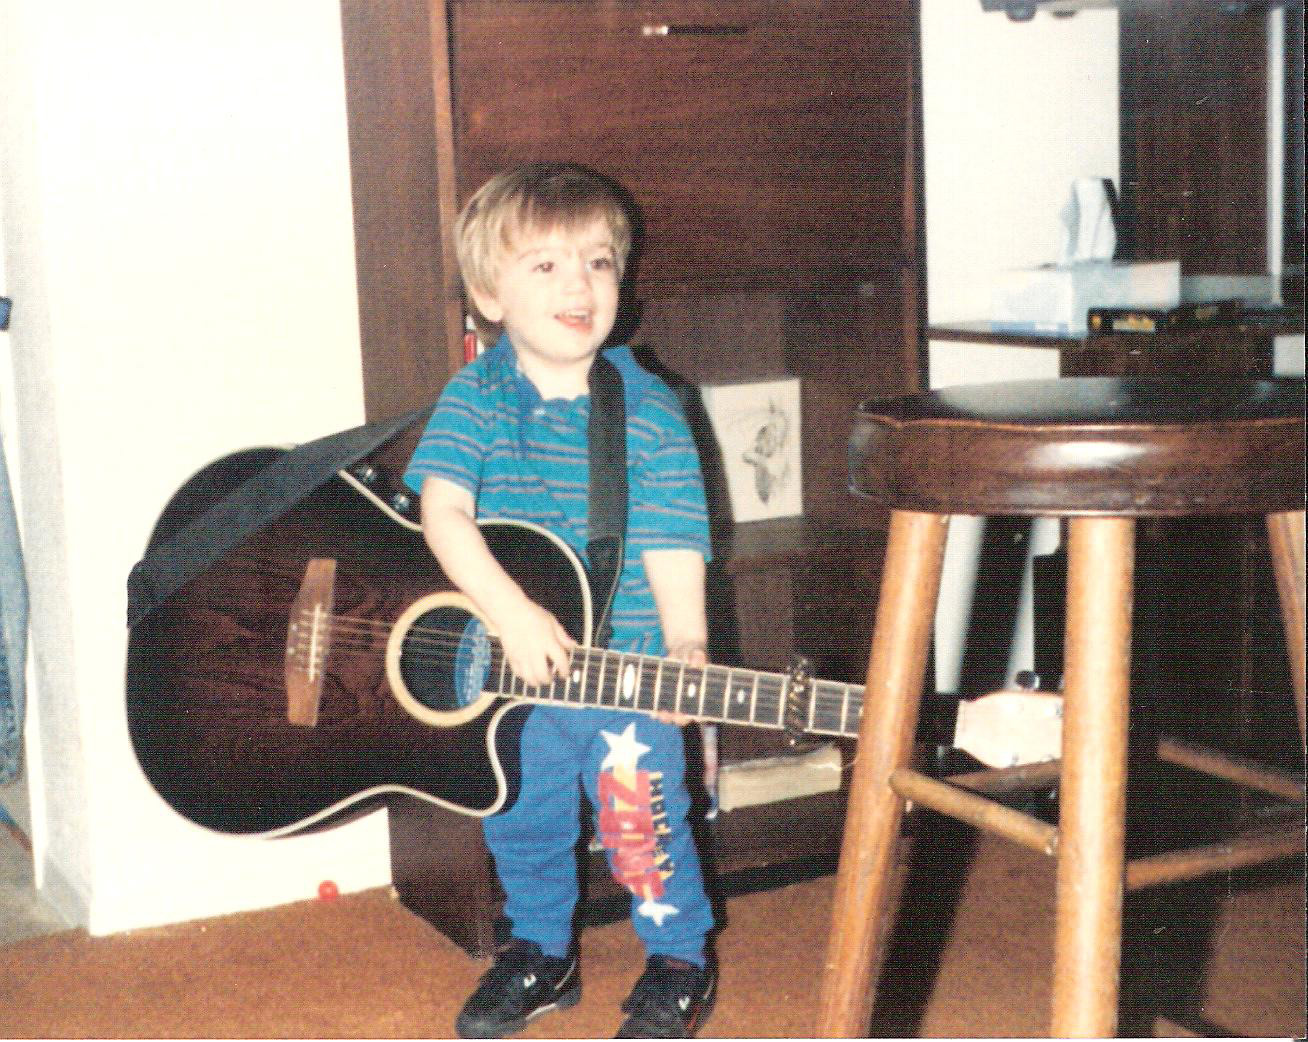 Spencer Golvach, at the age of three, pictured with a guitar. Authorities say Golvach was killed by Victor Reyes, an undocumented immigrant, during a random shooting spree in January 2015.